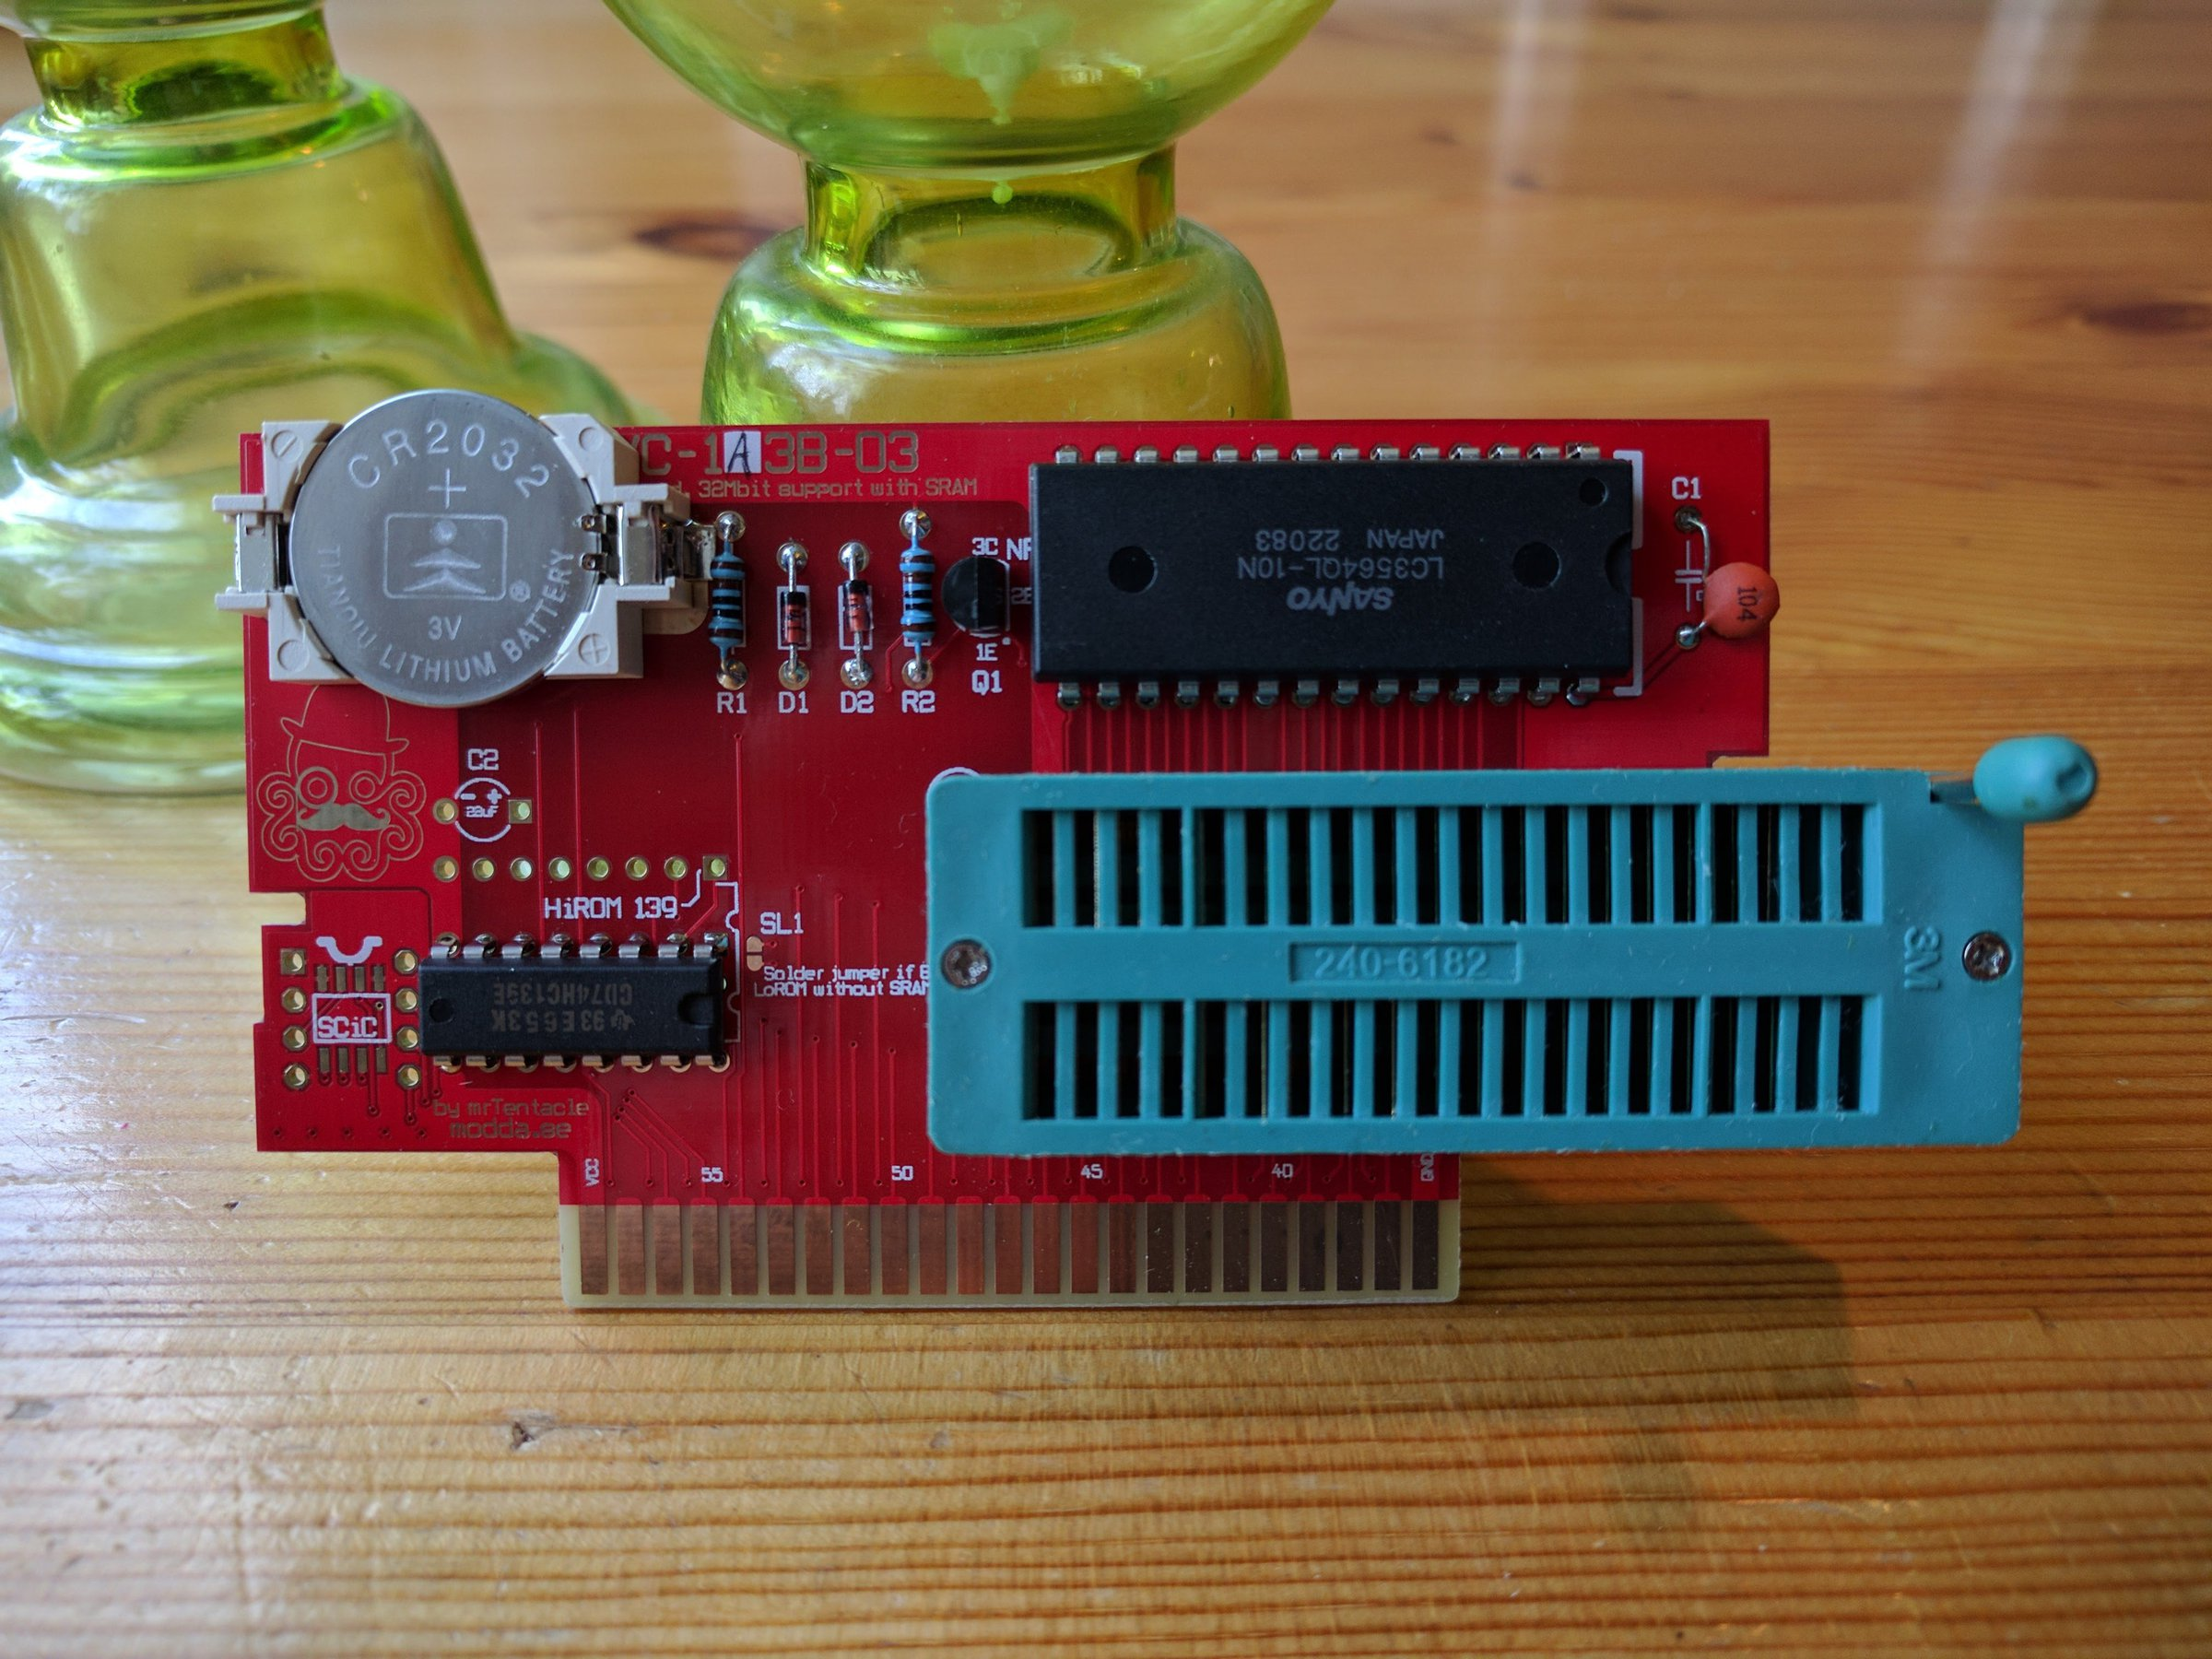 Snes Repro Pcb Build Your Own Carts From Mrtentacle On Tindie How To Make Circuit Boards The Easy Way 4